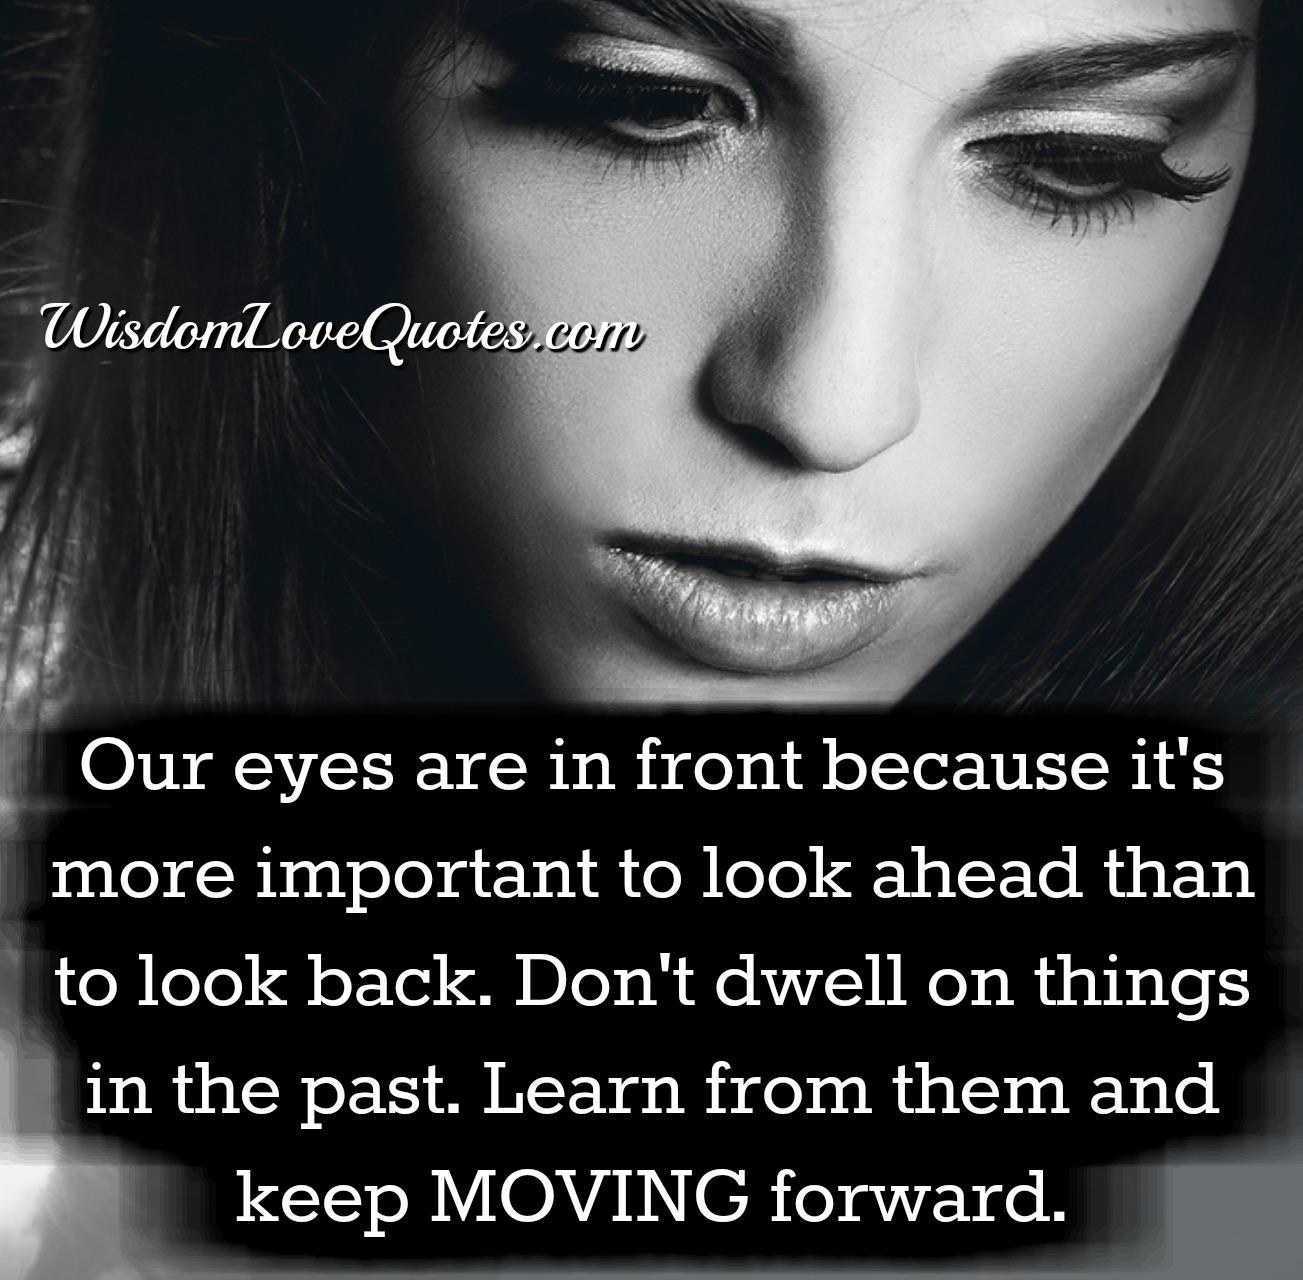 Don't dwell on things in the past